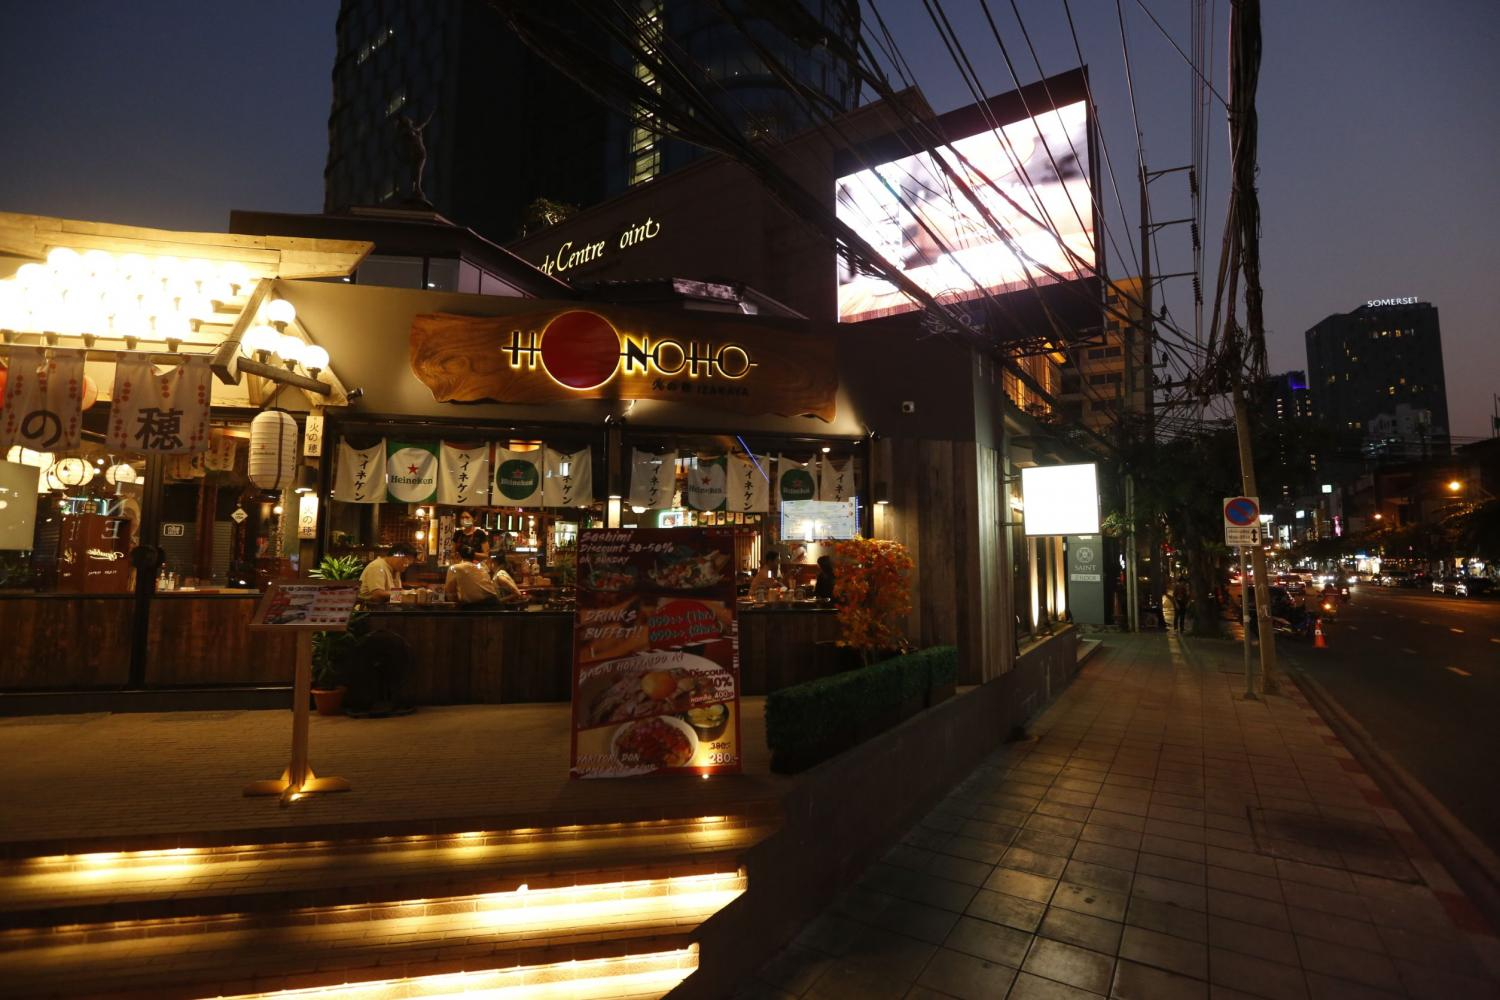 A diner at Bangkok's Sukhumvit 55, an area in Thong Lor. The alcohol ban and restrictions in restaurants was lifted on Tuesday. WICHAN CHAROENKIATPAKUL